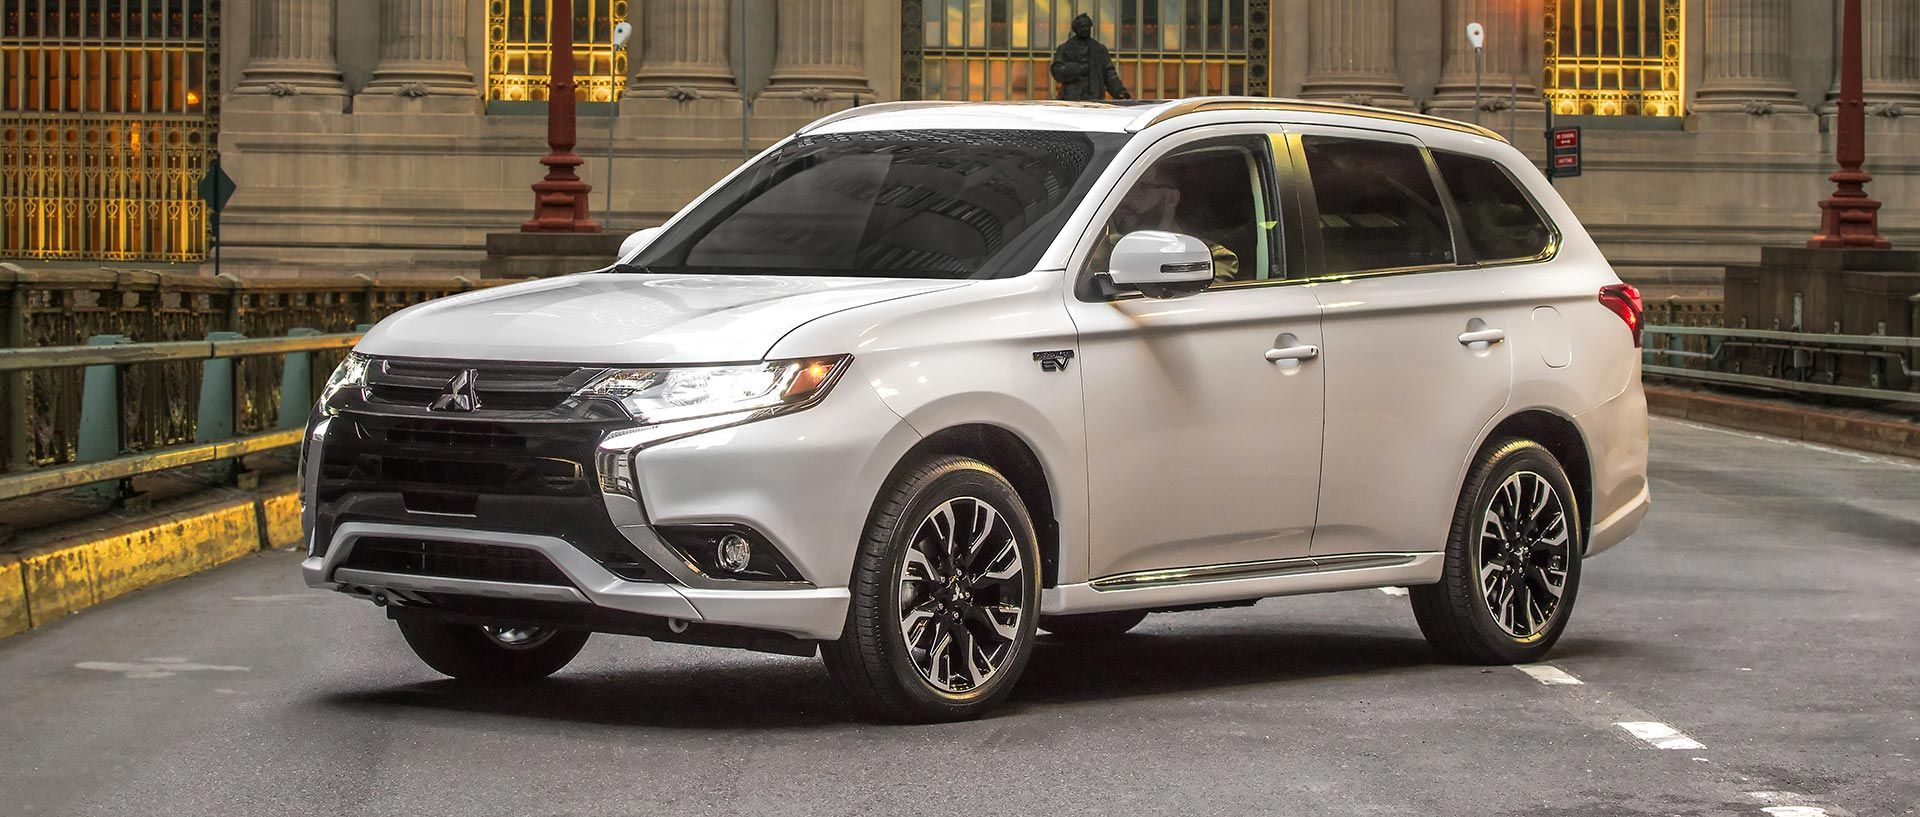 Ways To Protect Yourself From UsedCar Sales Tactics Consumer - York mitsubishi used cars